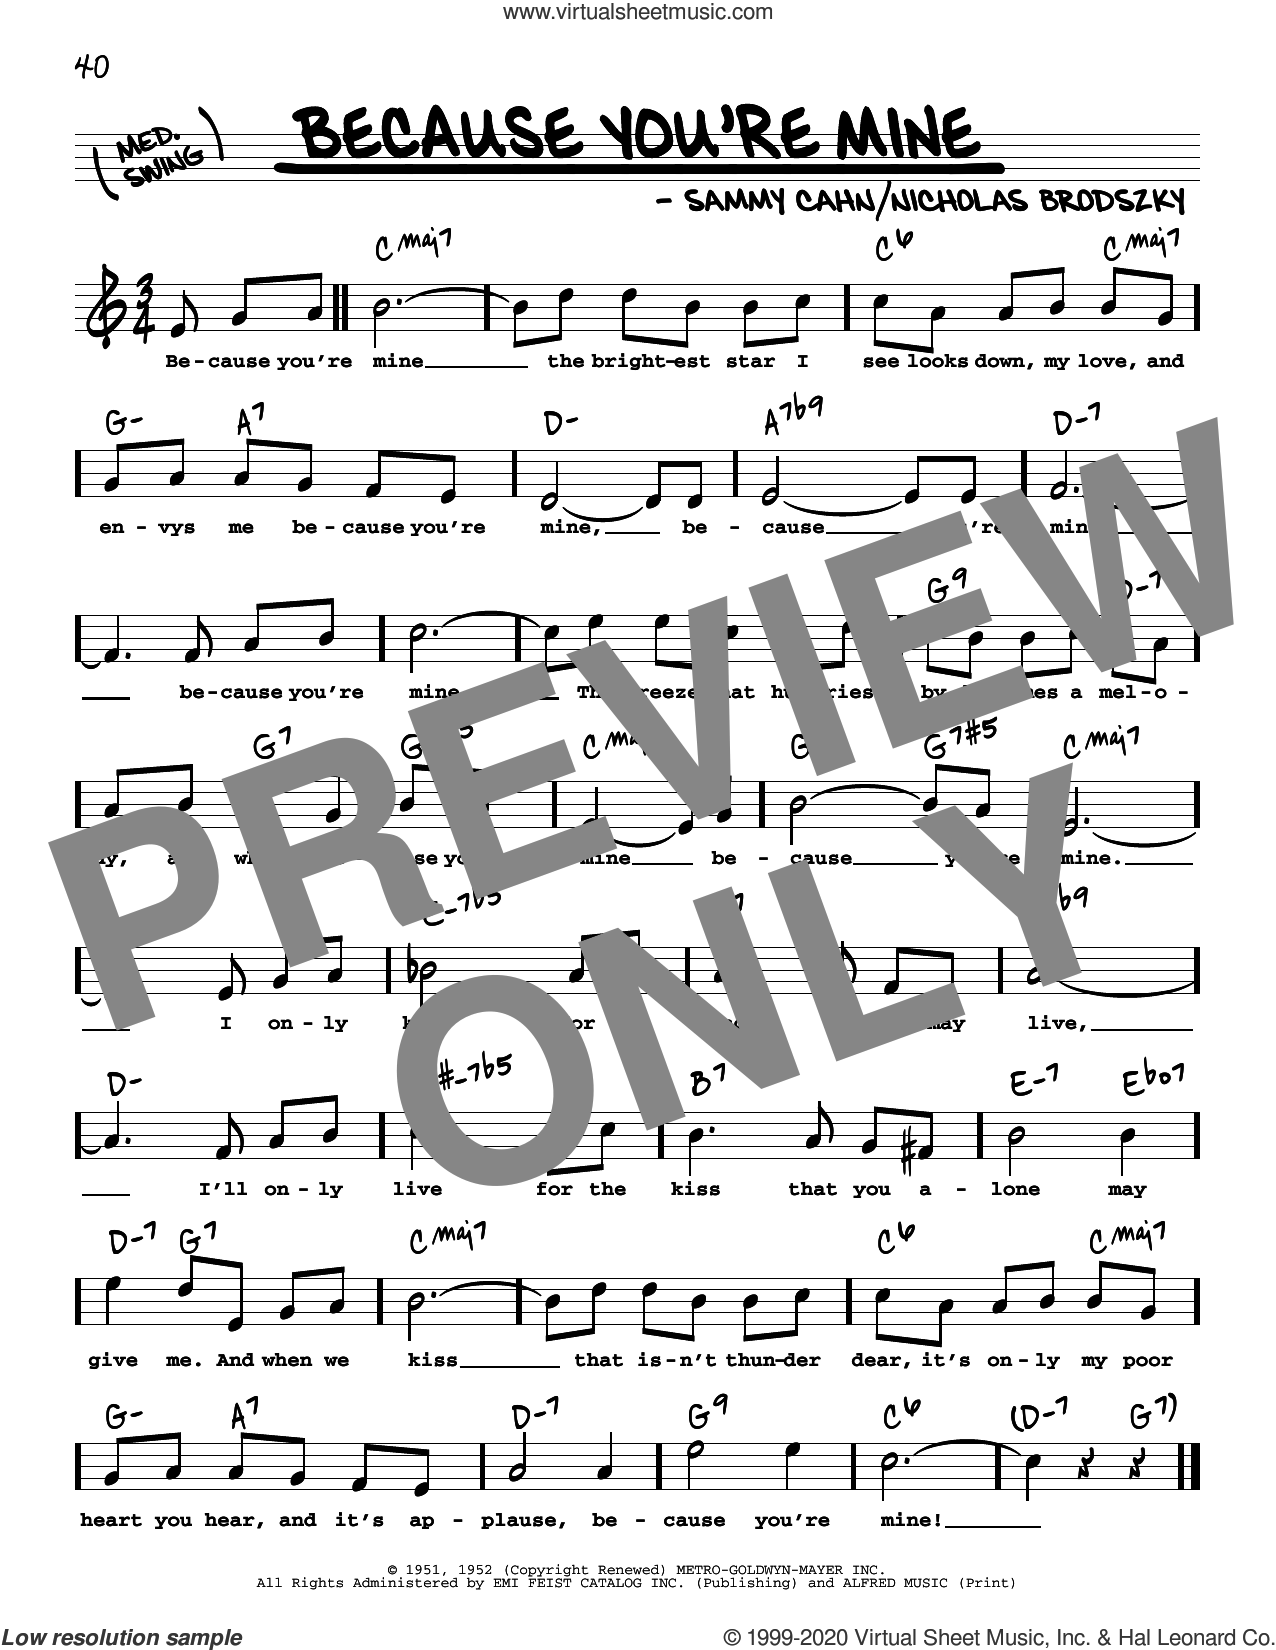 Because You're Mine (High Voice) sheet music for voice and other instruments (high voice) by Sammy Cahn, The Three Tenors and Nicholas Brodszky, intermediate skill level